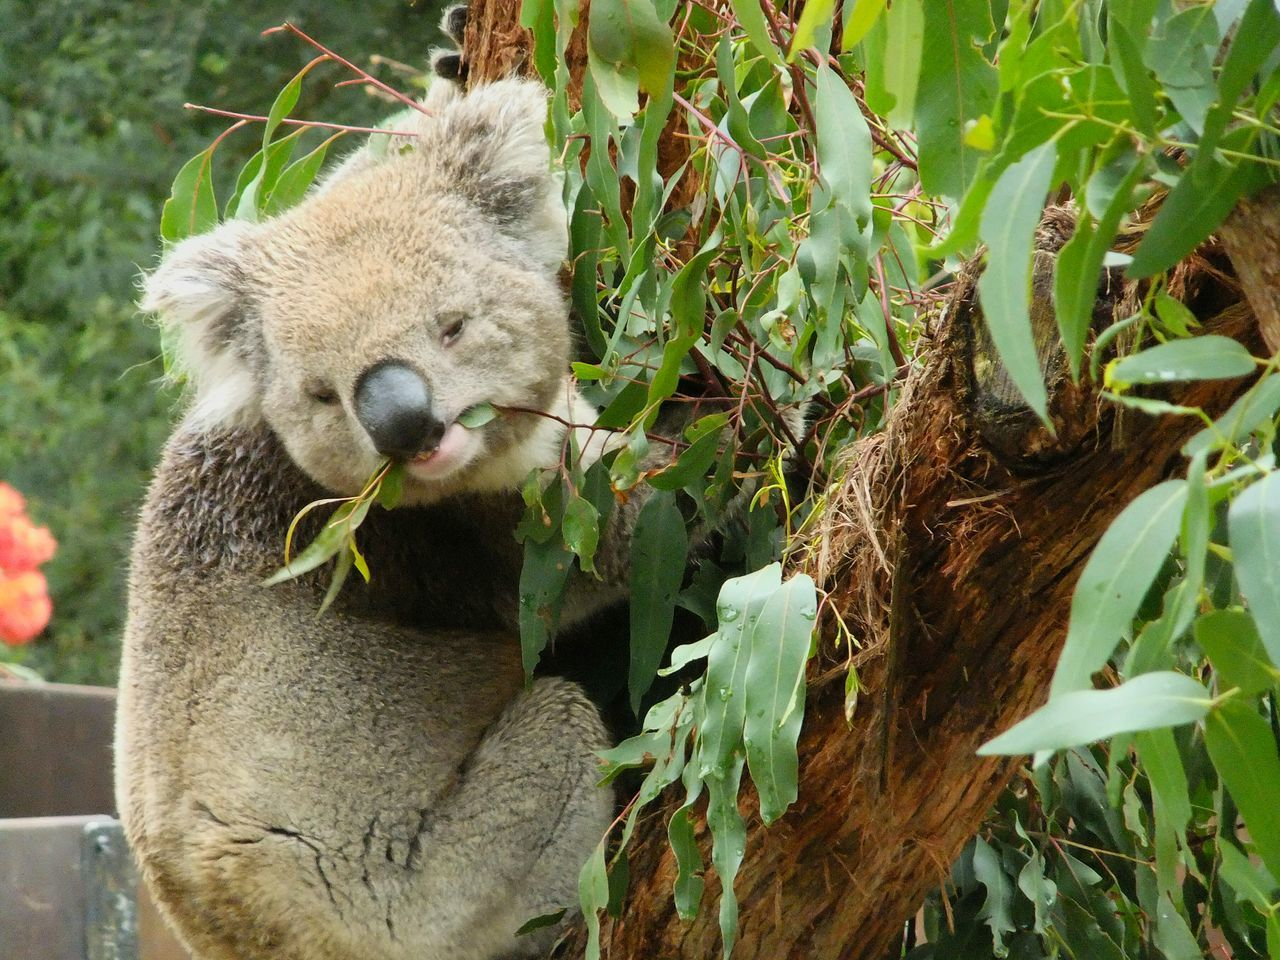 Animal Themes Animals In The Wild Animal Wildlife Tree Koala Green Color One Animal Close-up Green Nature Life Melbourne